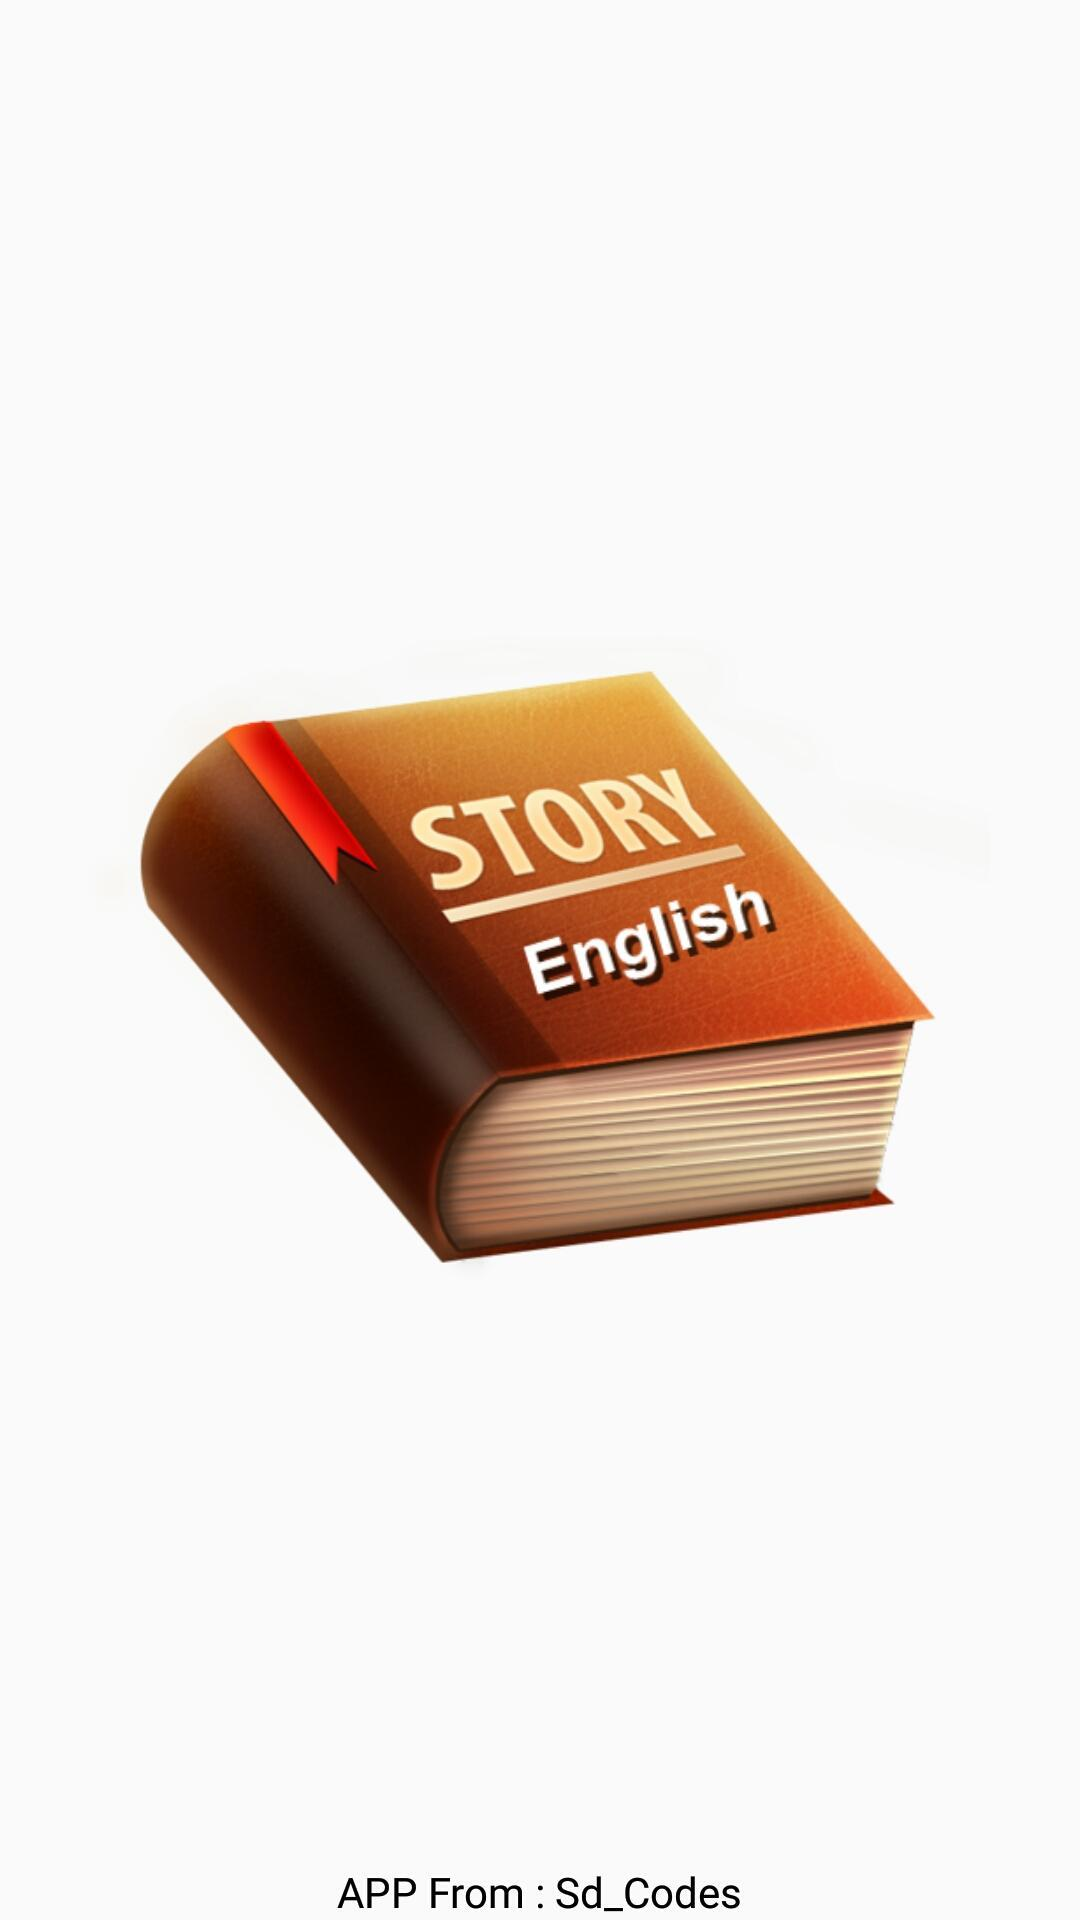 Stories Book for Android - APK Download